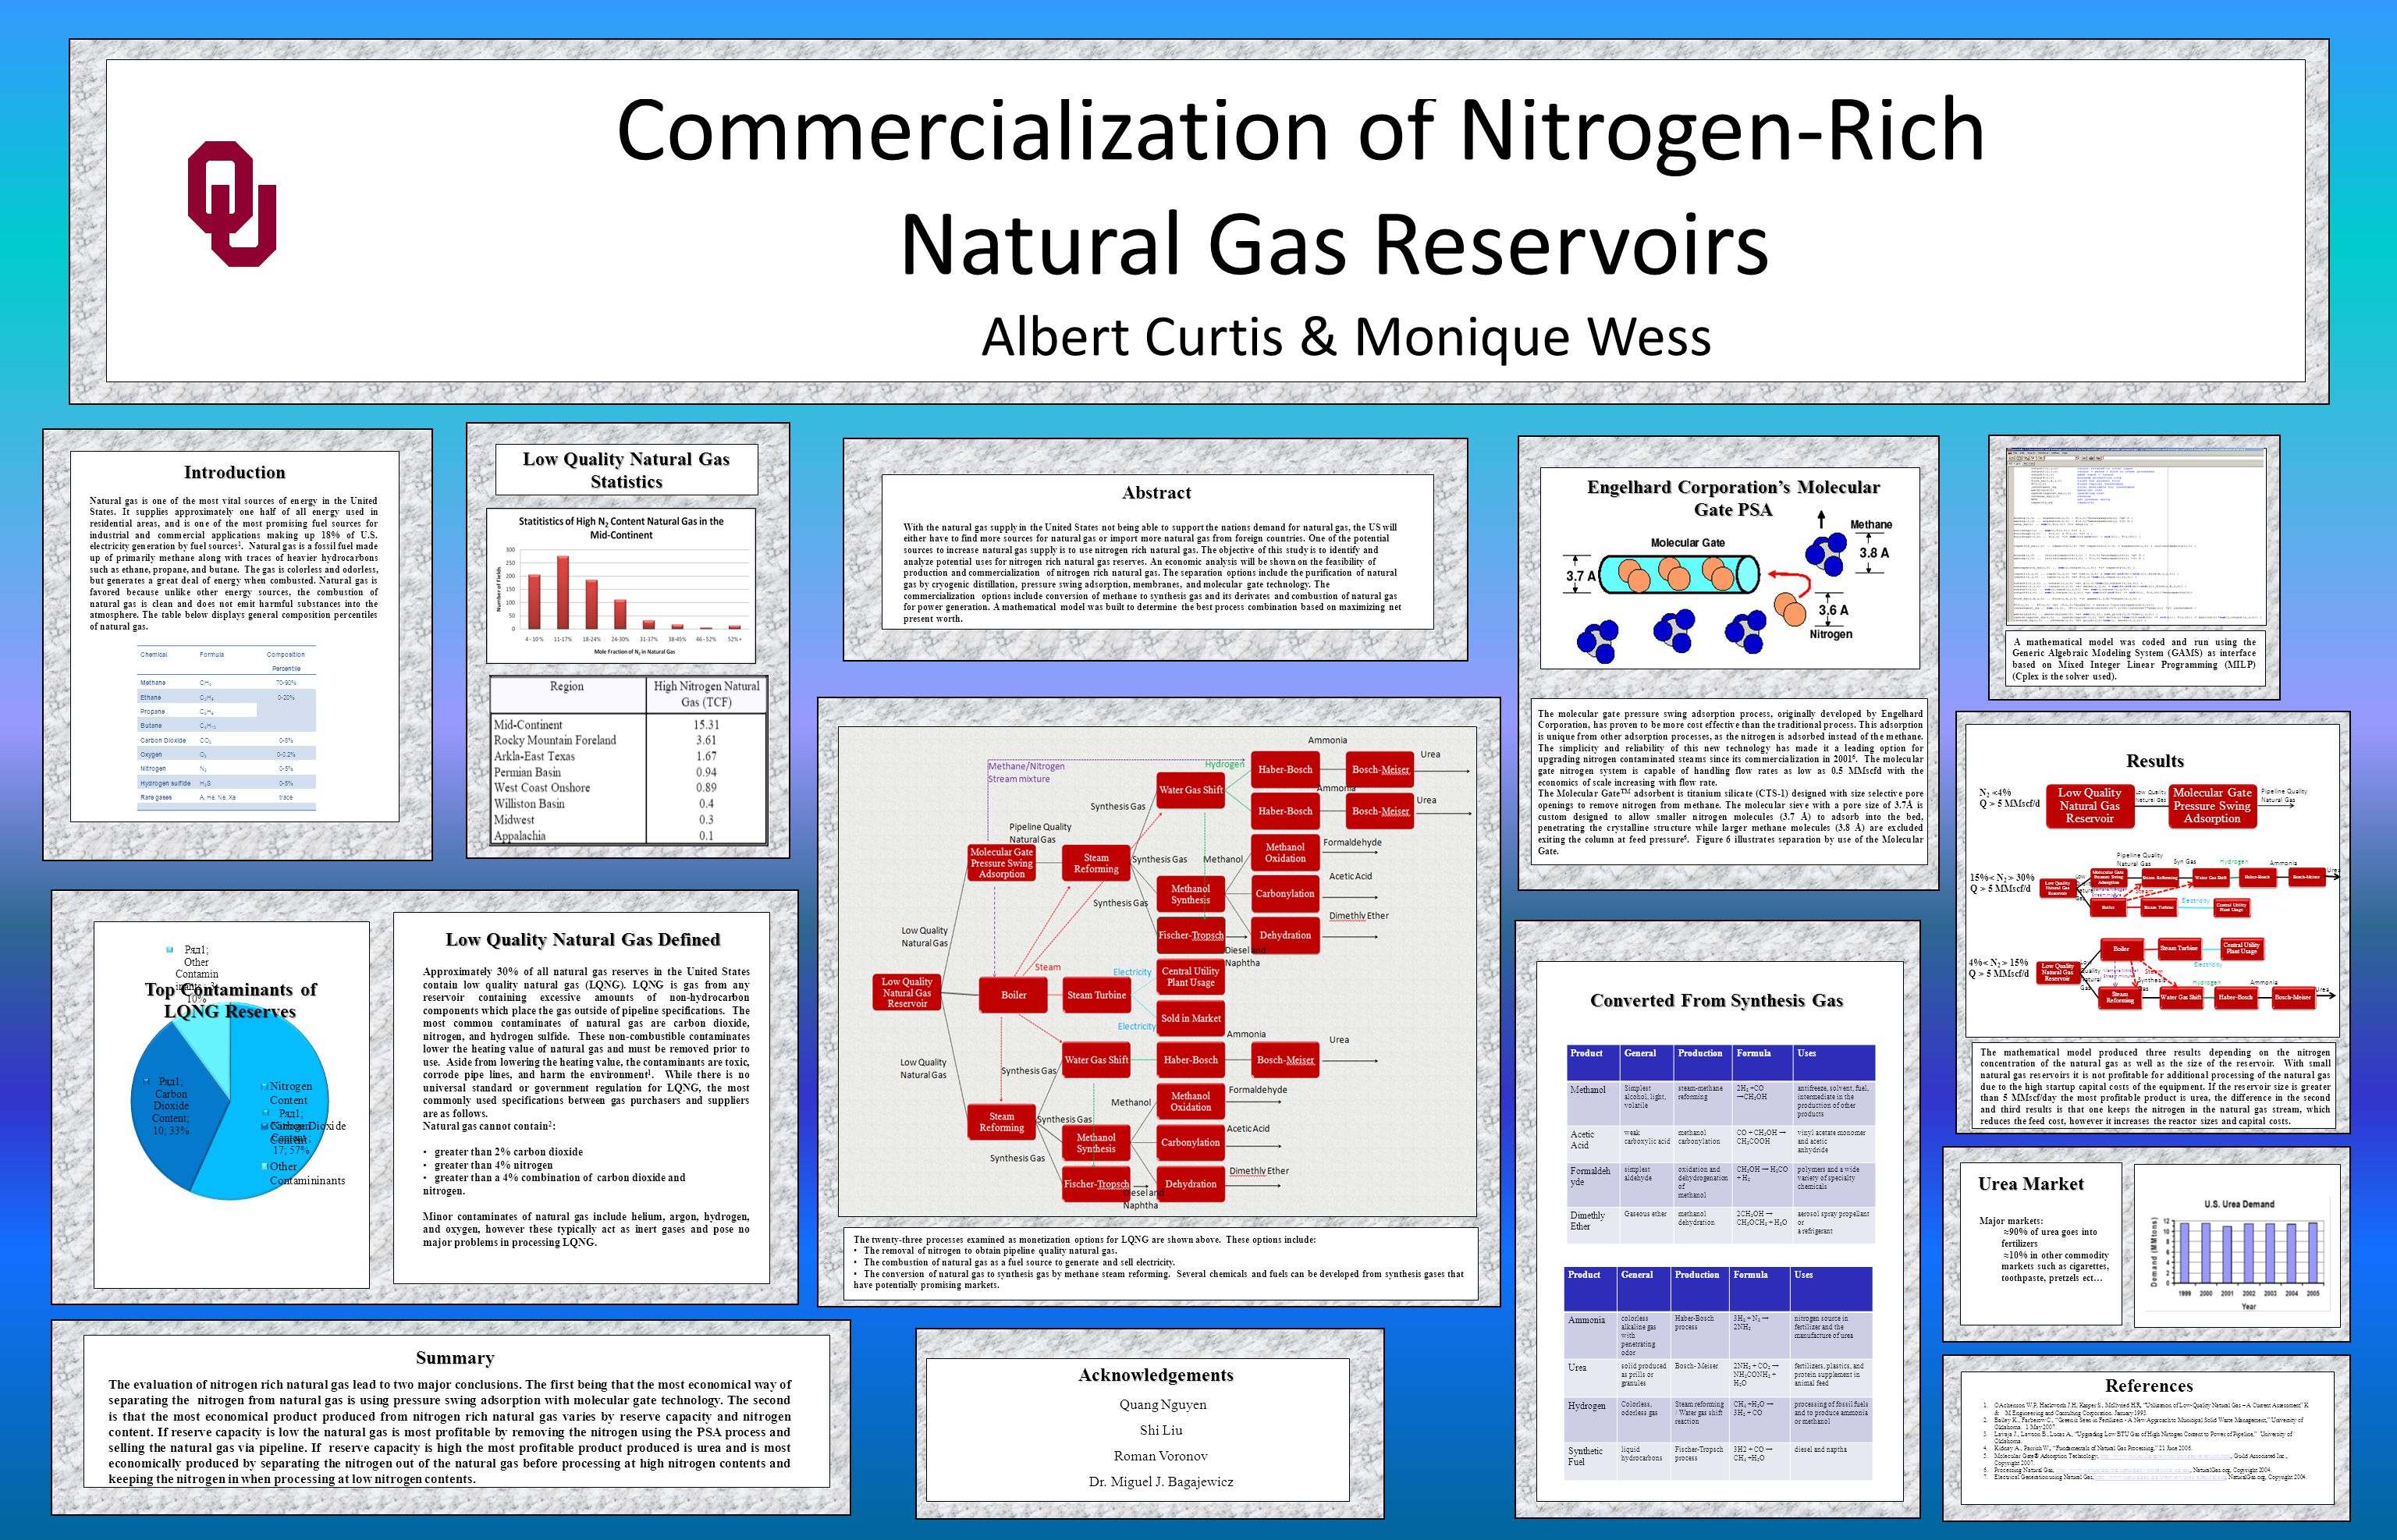 Diesel and Naphtha Low Quality Natural Gas Low Quality Natural Gas Methanol Steam Pipeline Quality Natural Gas Synthesis Gas Hydrogen Ammonia Synthesis Gas Electricity Synthesis Gas Ammonia Methanol Urea Formaldehyde Acetic Acid Dimethly Ether Diesel and Naphtha Methane/Nitrogen Stream mixture